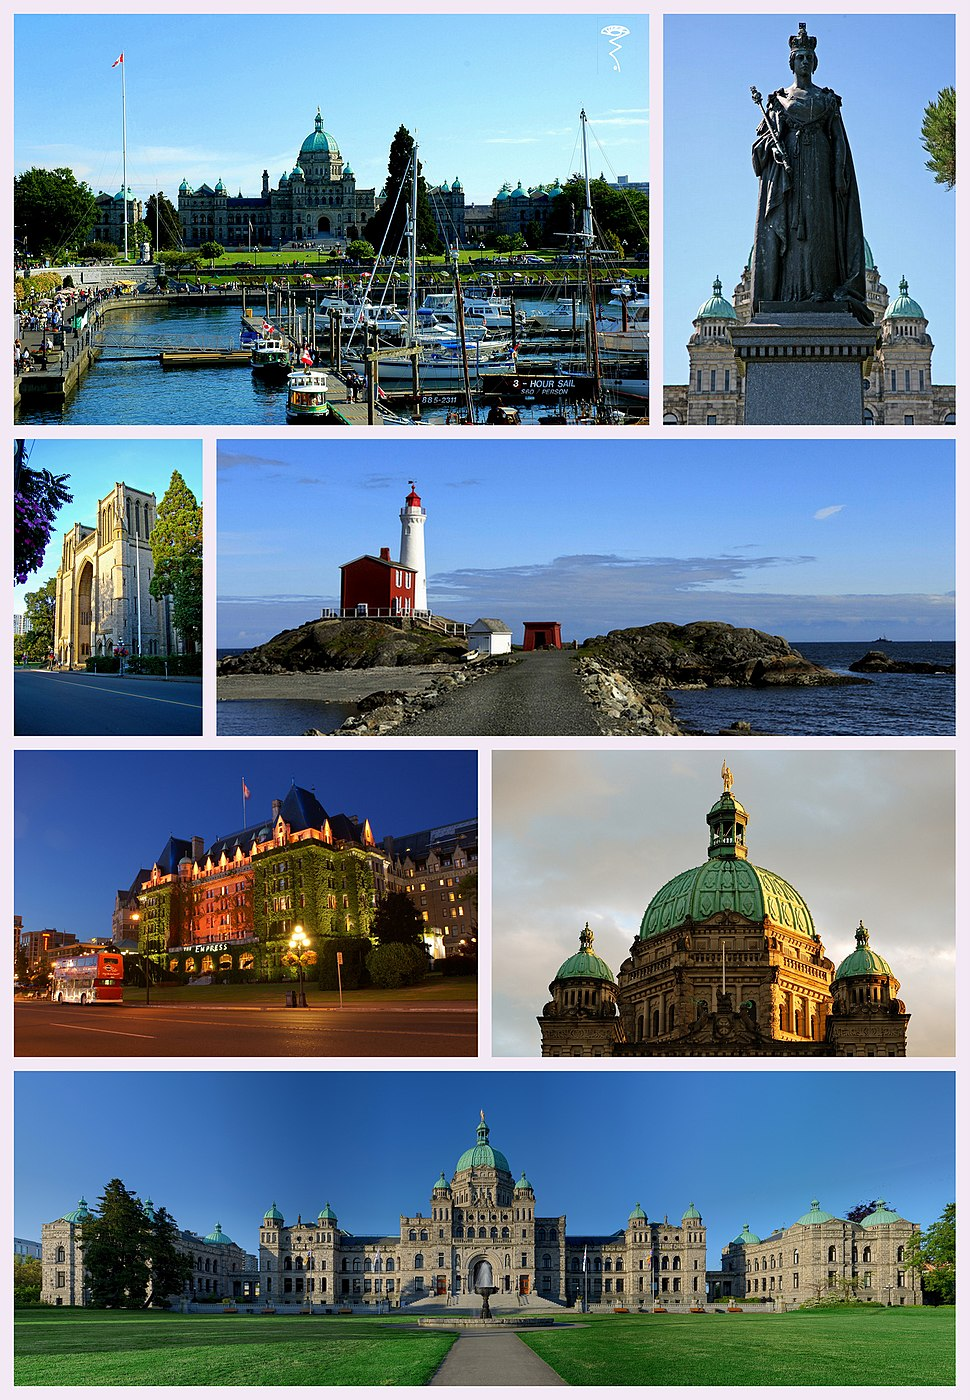 Clockwise from top left: the Inner Victoria Harbour, Statue of Queen Victoria, Fisgard Lighthouse, dome of the British Columbia Parliament Buildings, full view of Parliament, the Empress Hotel, and Christ Church Cathedral.